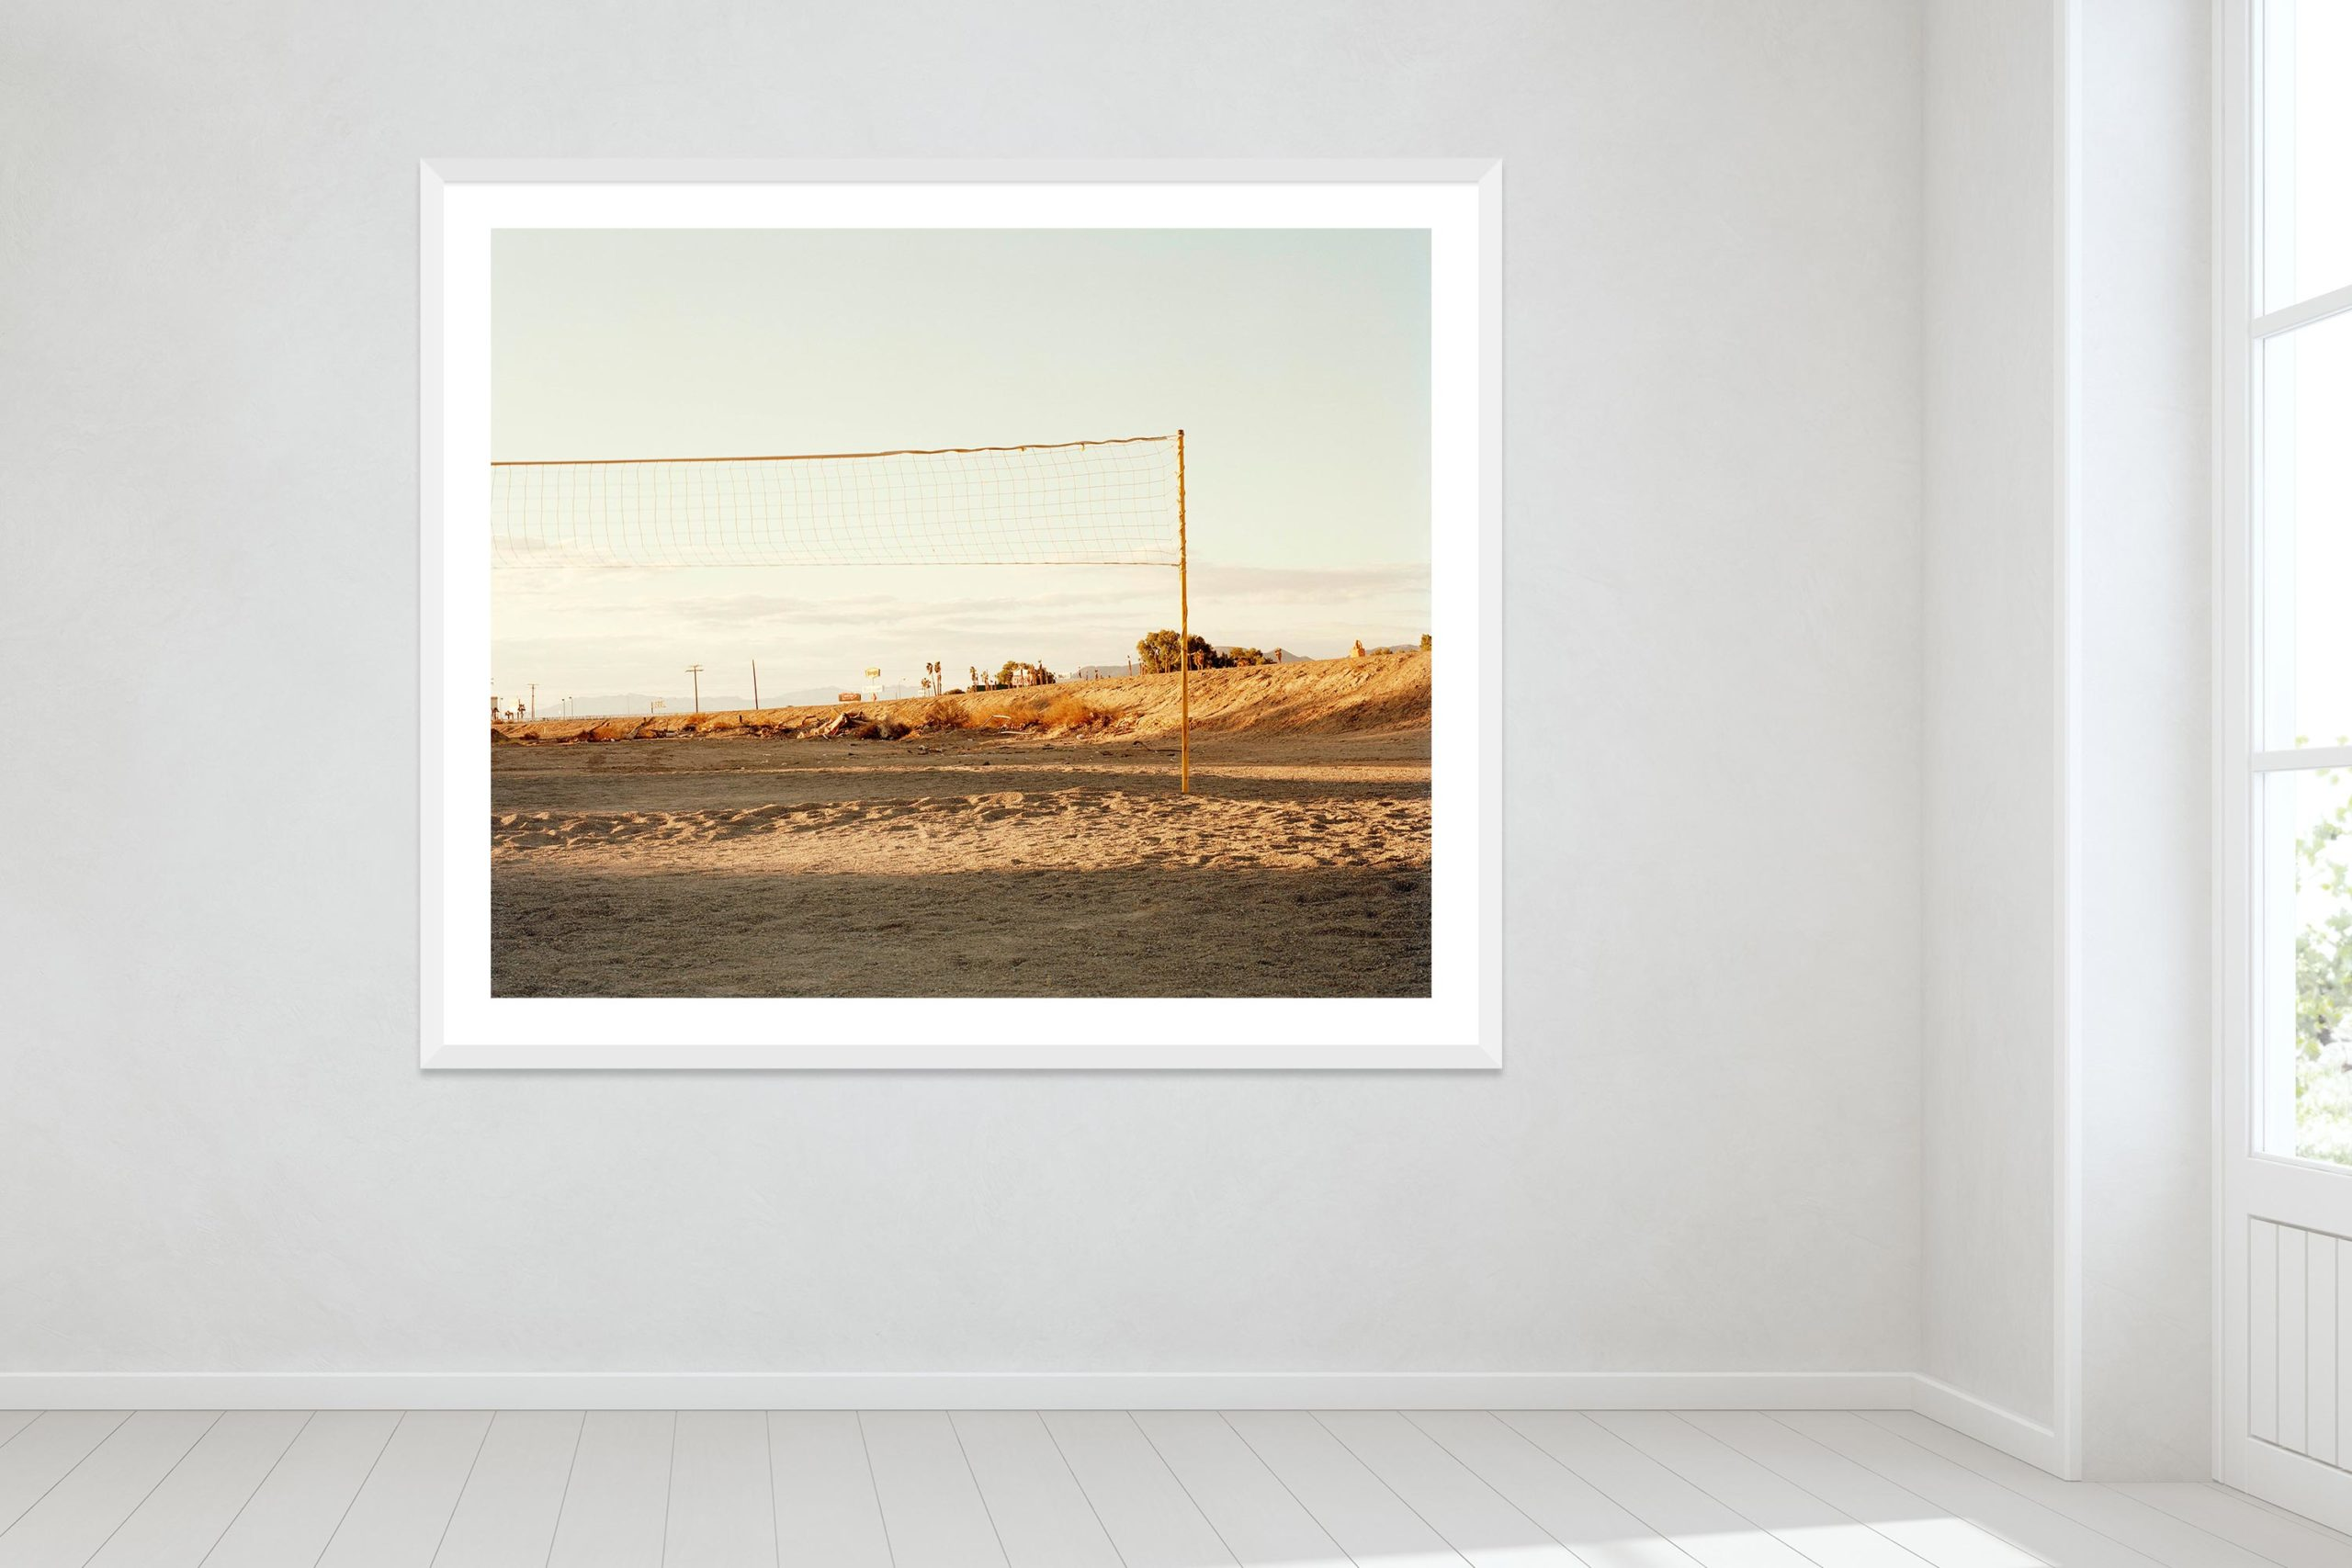 I Knew These People - White Frame - Oh Mojave Collection - Fine Art Photography by Toby Dixon